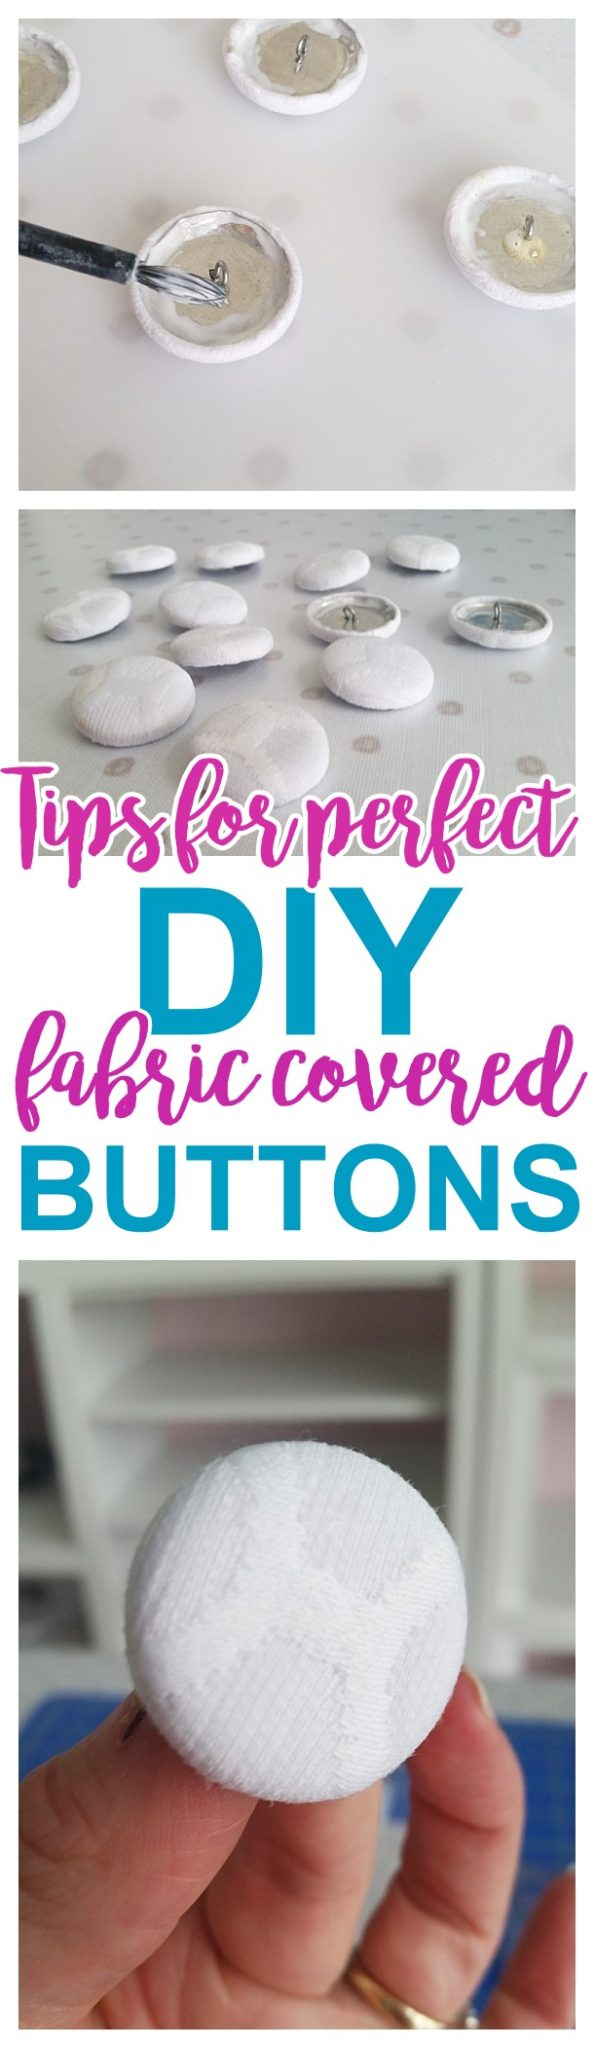 DIY Upholstery Fabric Covered Buttons - Tips, Tricks and Hacks to make them EASY and STURDY - Do it Yourself Step by Step Tutorial via Dreaming in DIY #upholsteredbuttons #howtomakefabriccoveredbuttons #fabriccoveredbuttons #buttoncoverkit #buttoncoverkithack #fabricbuttonstutorial #buttonhack #upholstery #easyupholstery